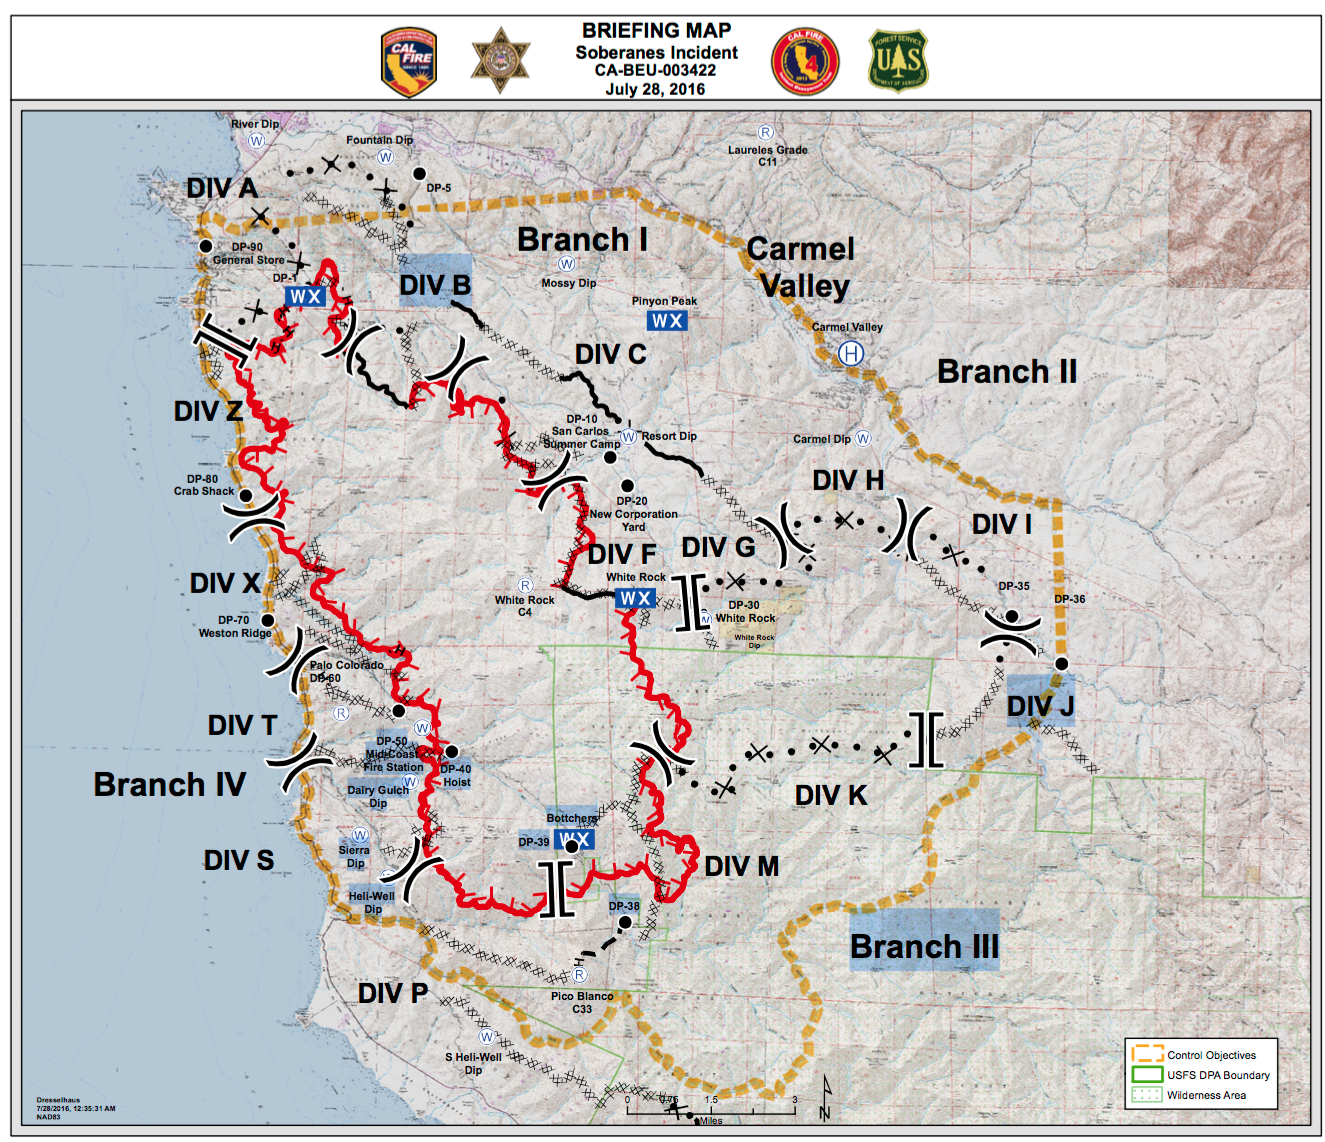 7/28/16 Soberness Fire Maps | Big Sur California